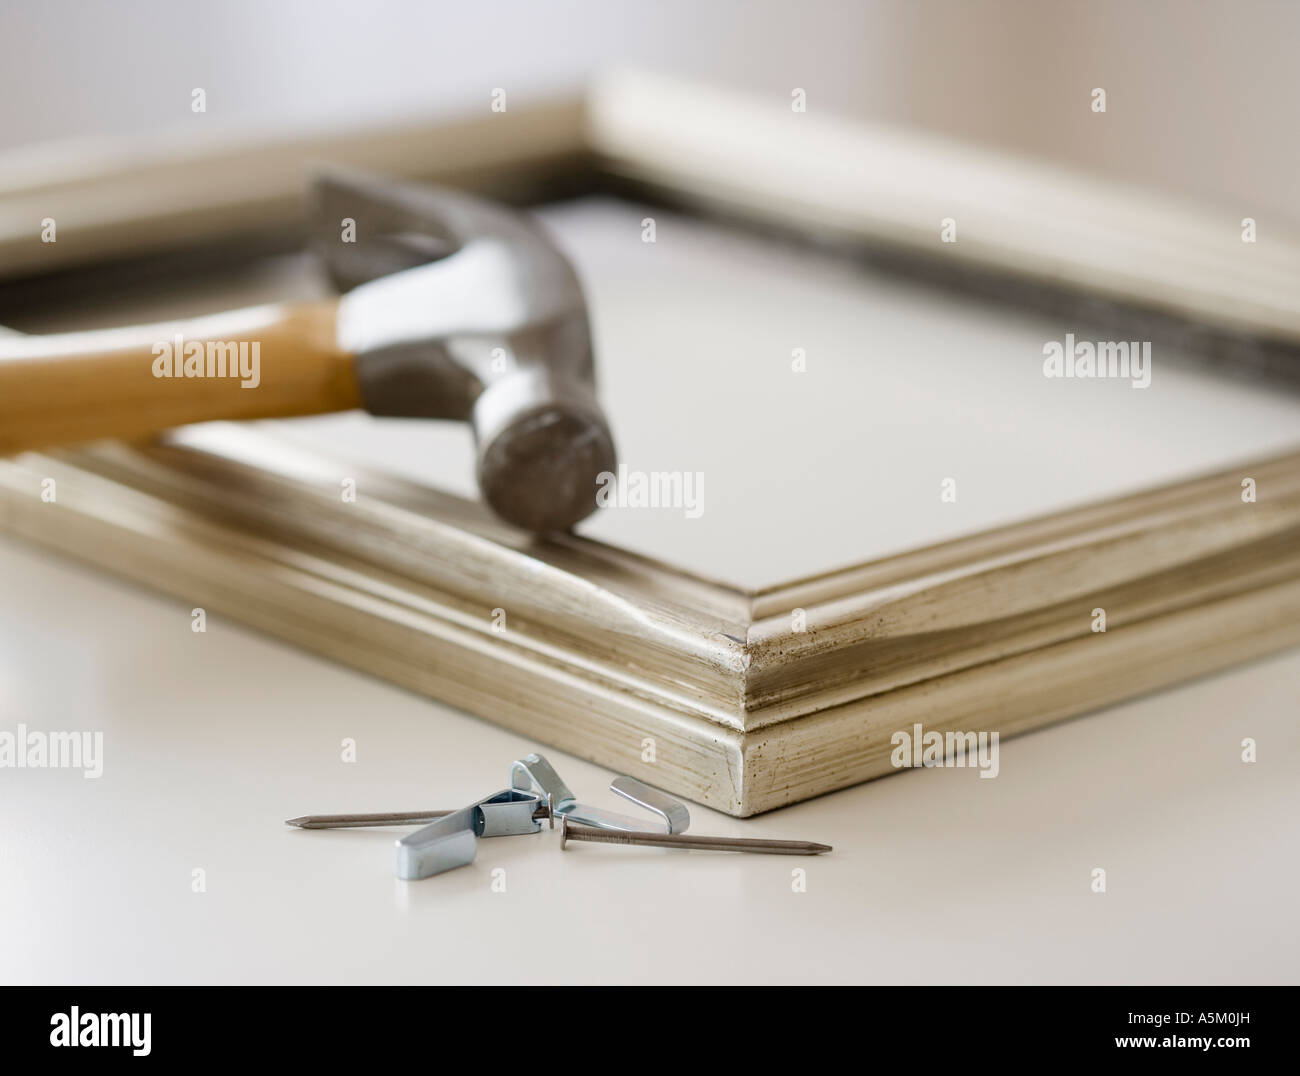 Framing Hammer Stock Photos & Framing Hammer Stock Images - Alamy